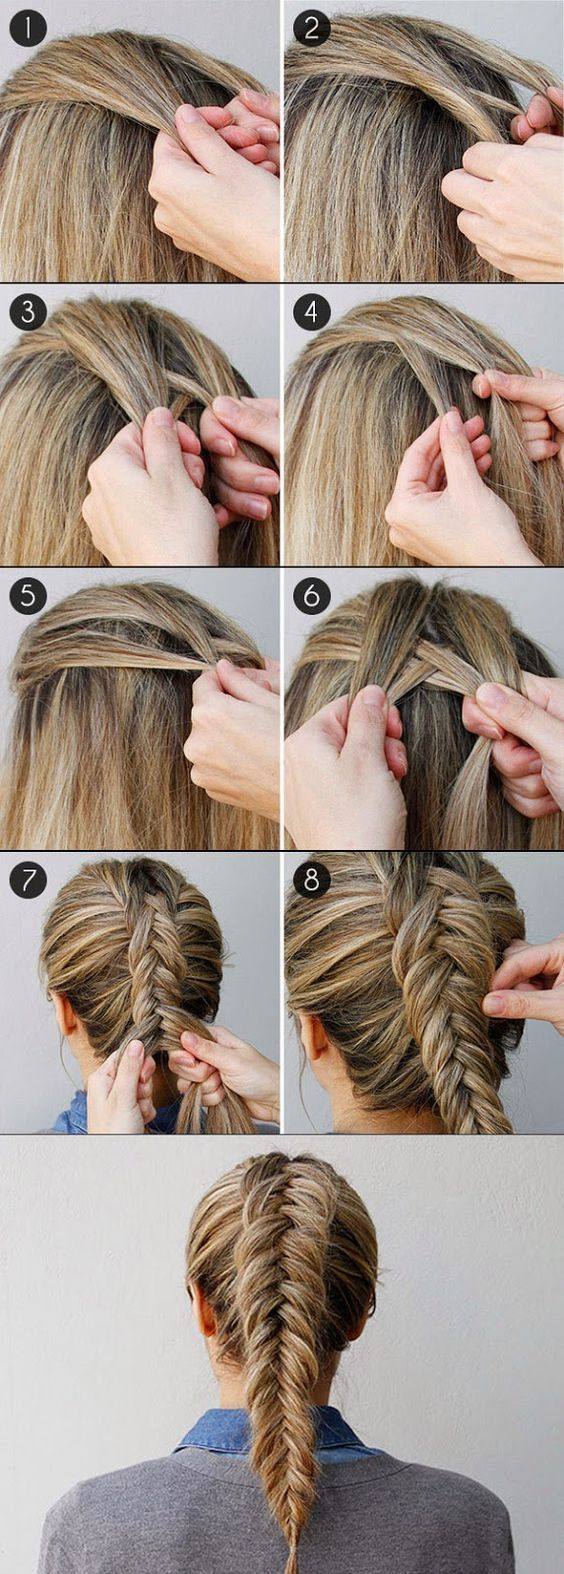 How to Fishtail Braid Your Own Hair? - Hairstyle Ideas ~ Calgary, Edmonton, Toronto, Red Deer, Lethbridge, Canada Directory #hairstyles #longhairtips: